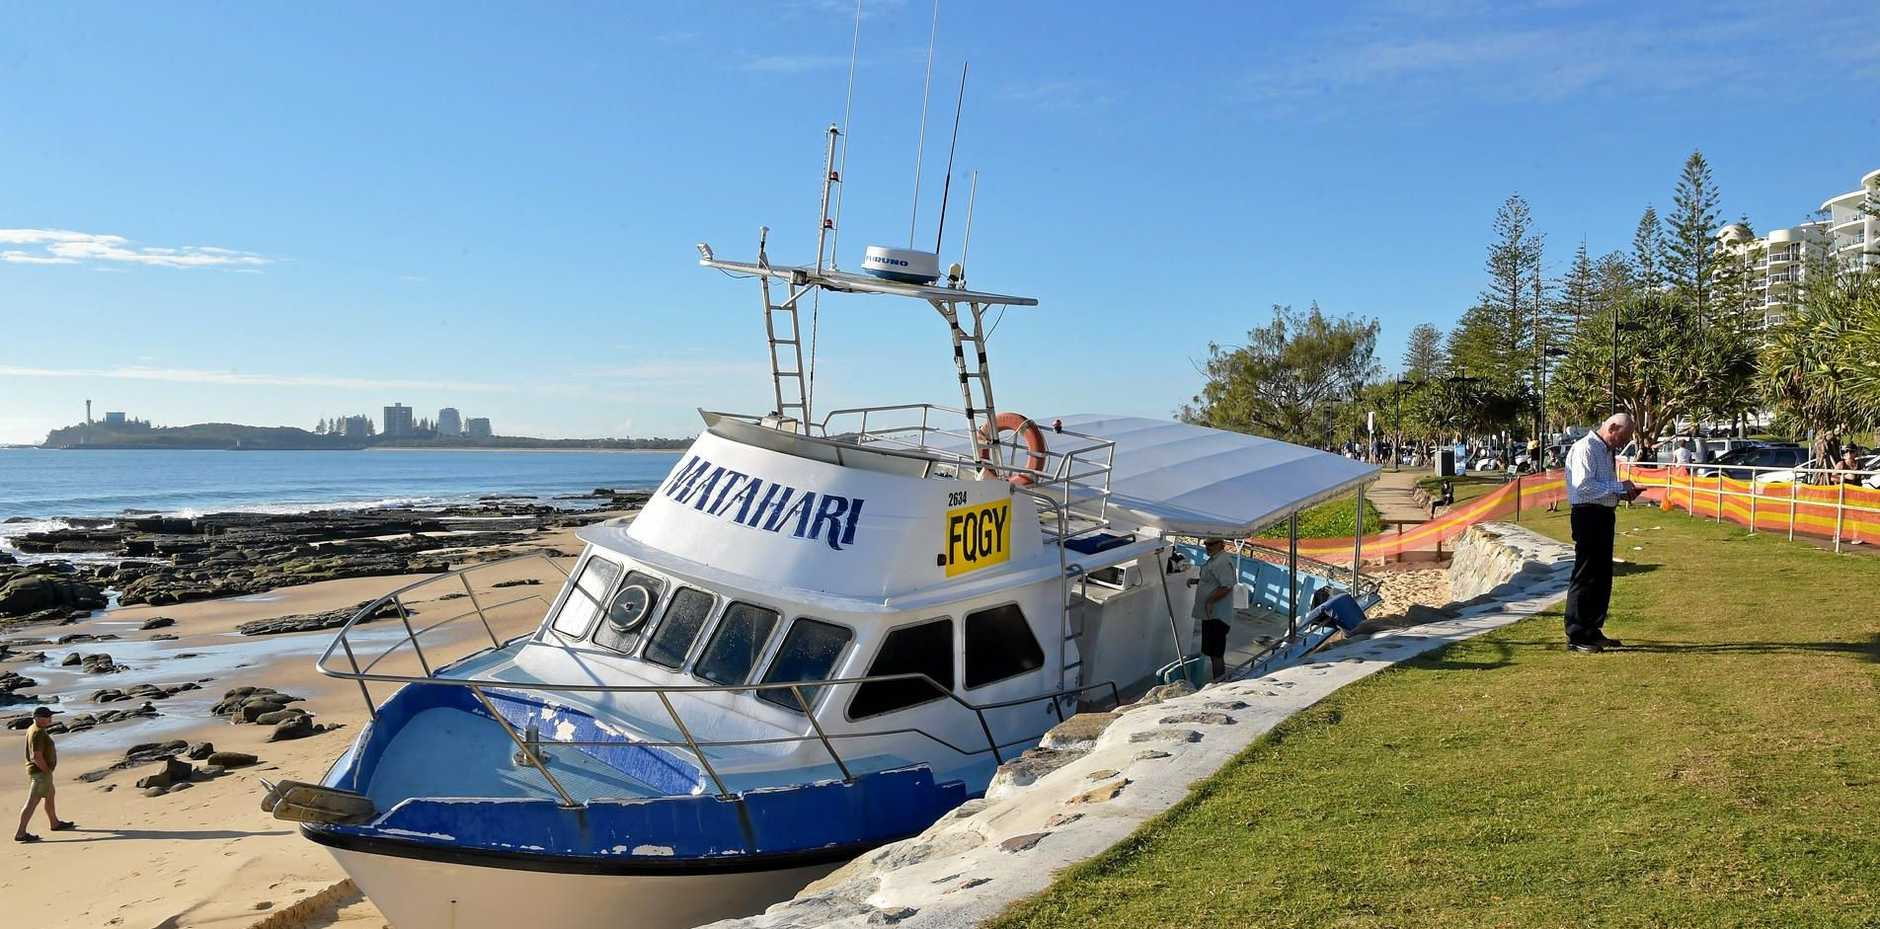 The Matahari fishing boat makes an unscheduled landing on Mooloolaba Beach.